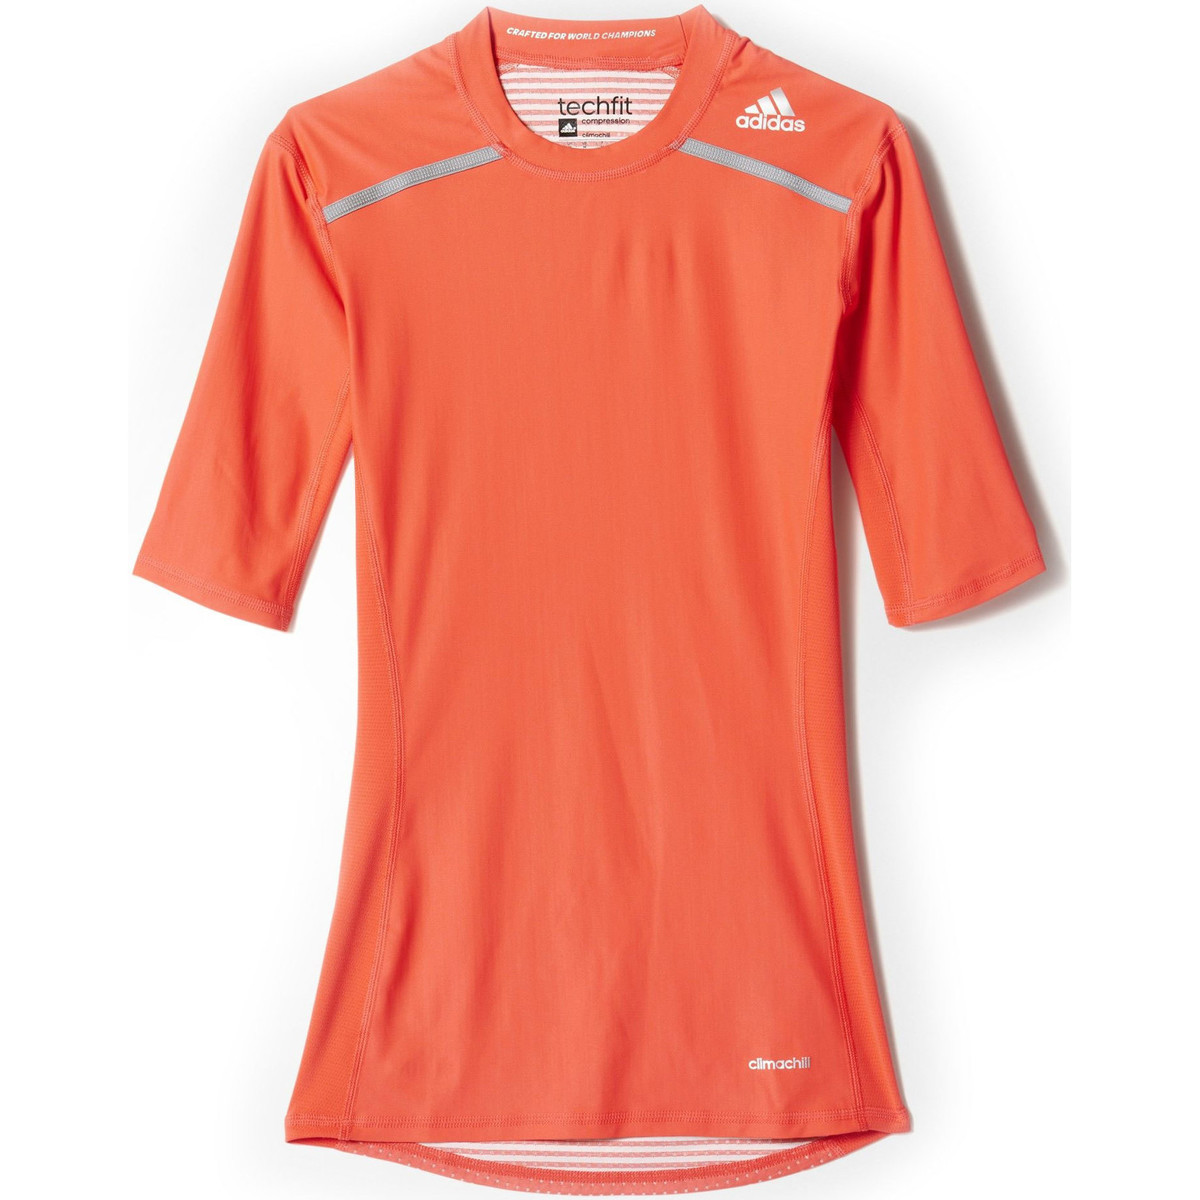 adidas Performance T-shirt Techfit Chill Adidas orange